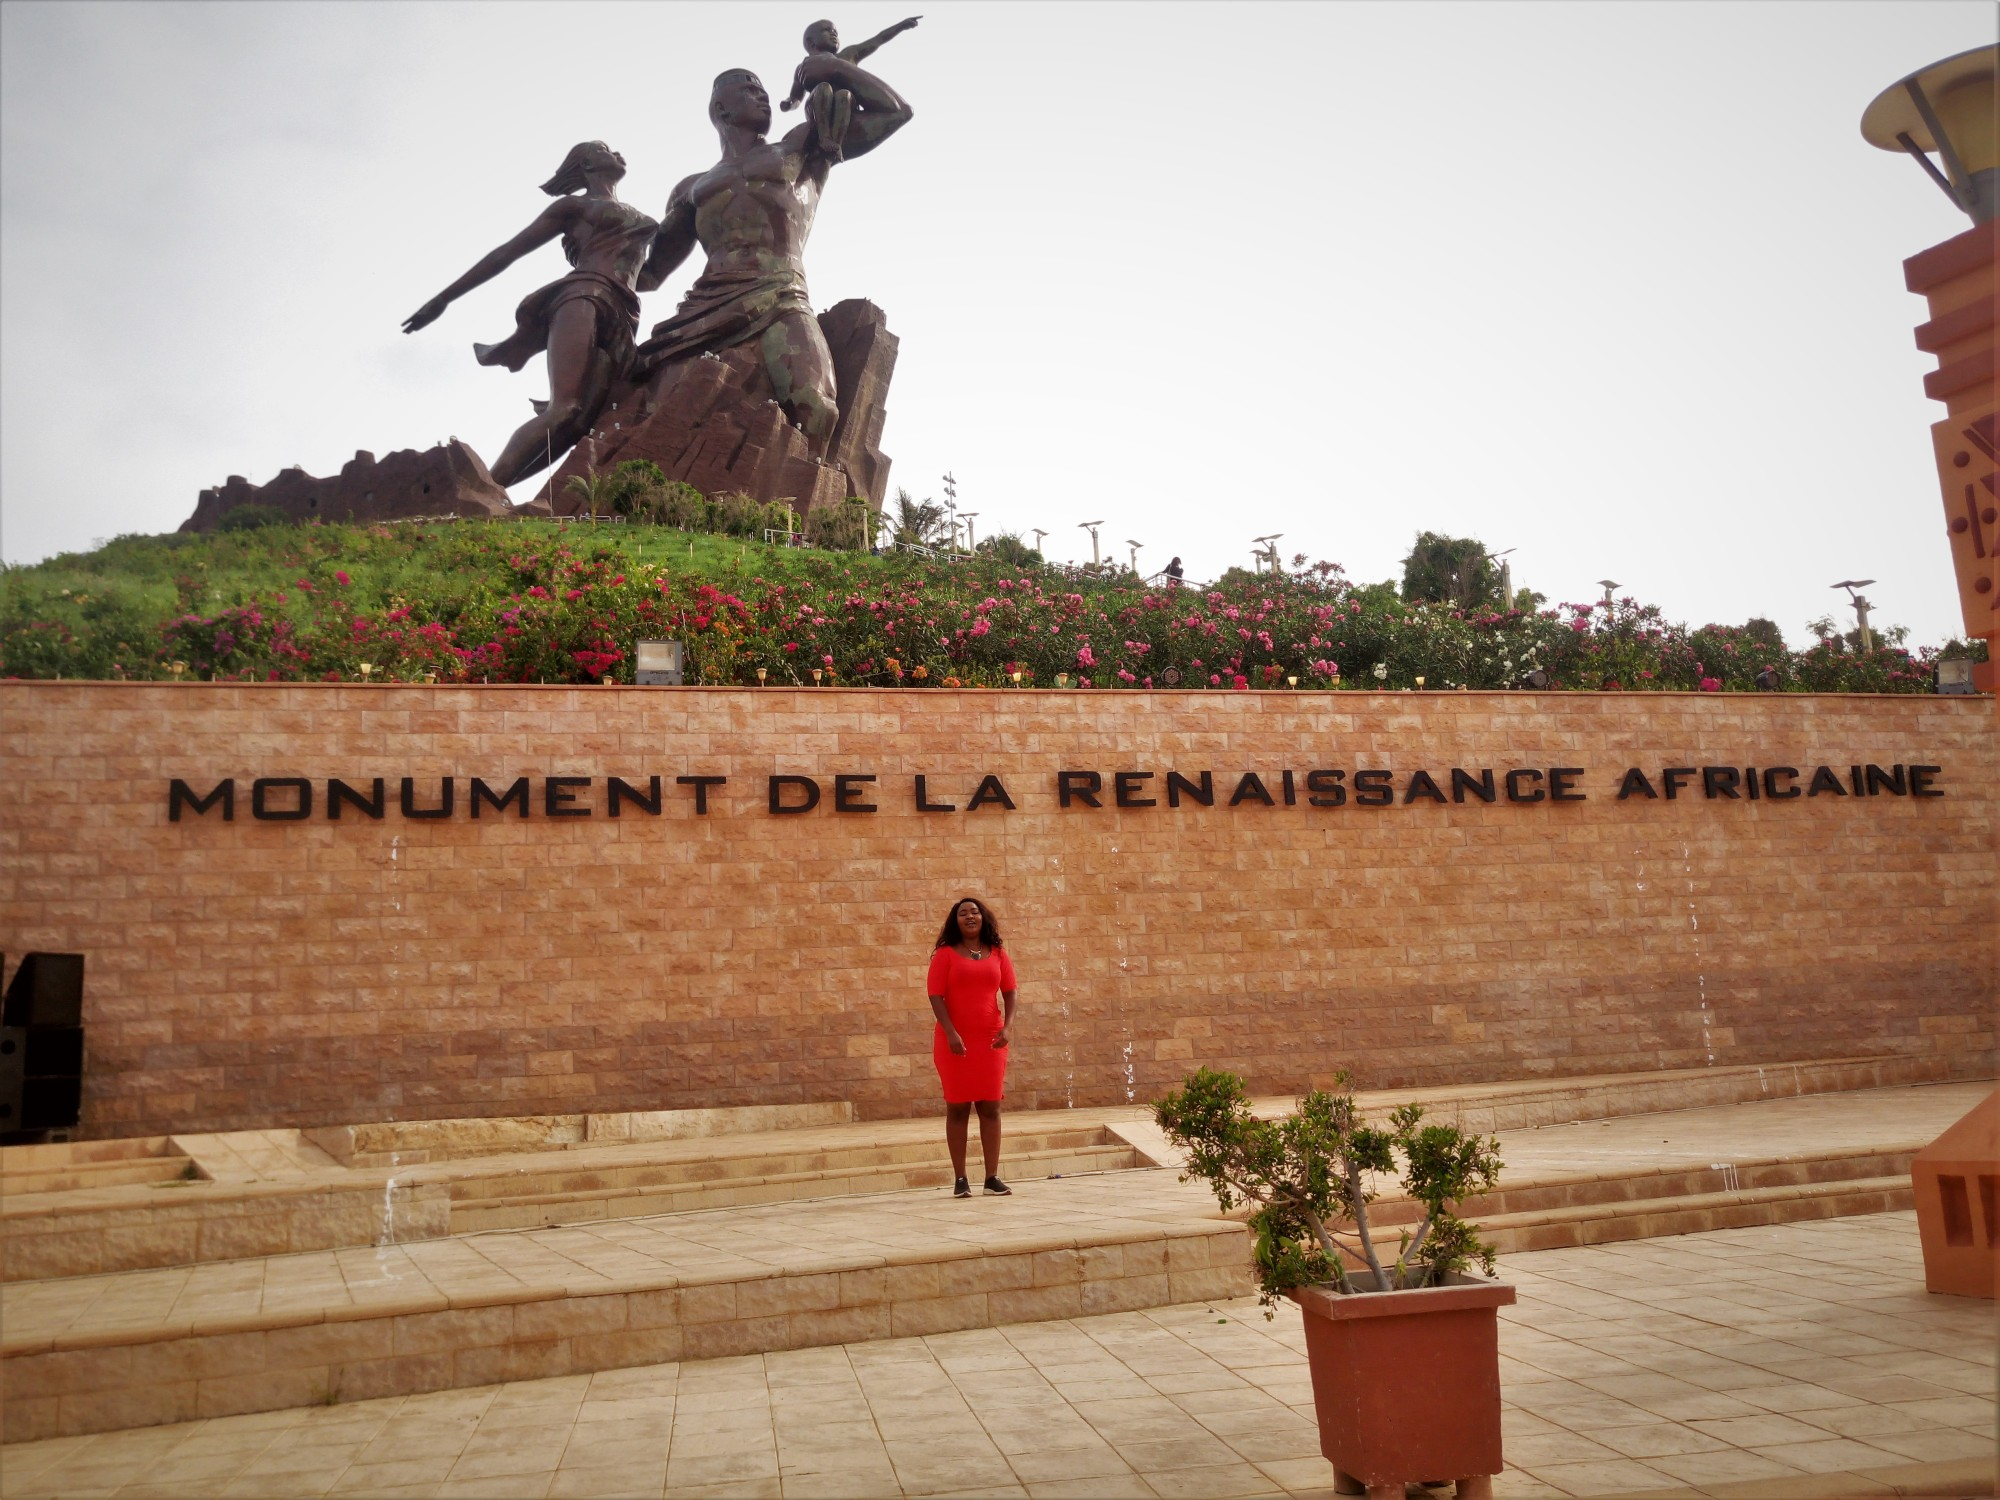 Tourist Activities in Dakar, Senegal